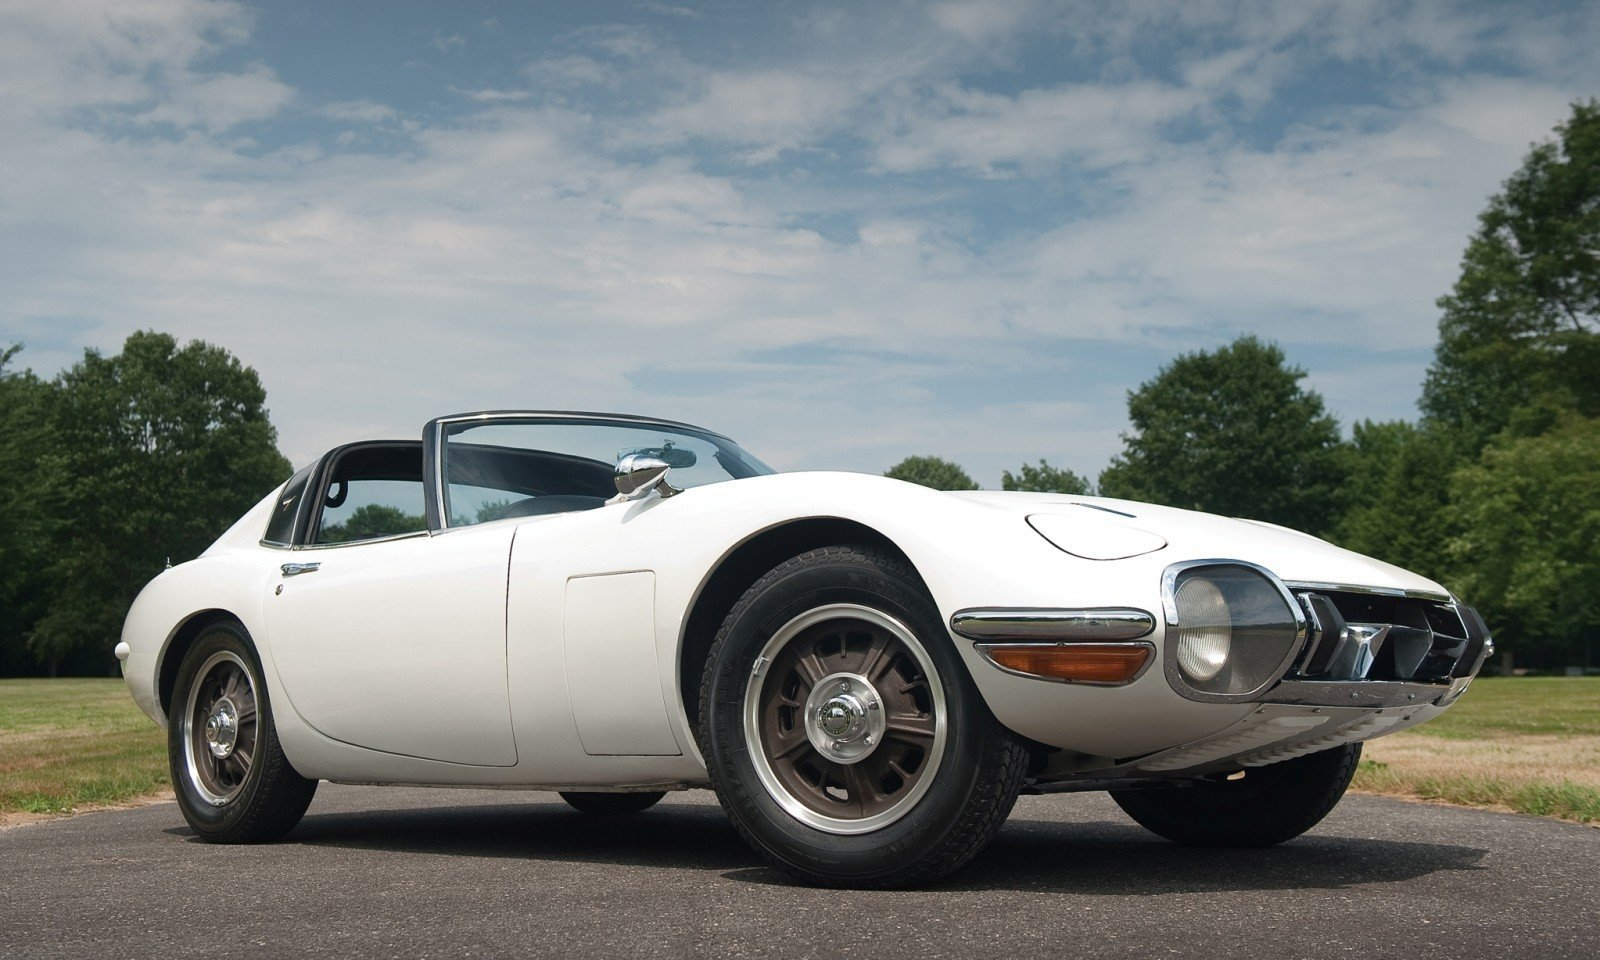 1966 Toyota 2000GT Targa - Bond Movie Car Idea Realized, But Earned Only $200k in RM Auctions London 2010 26